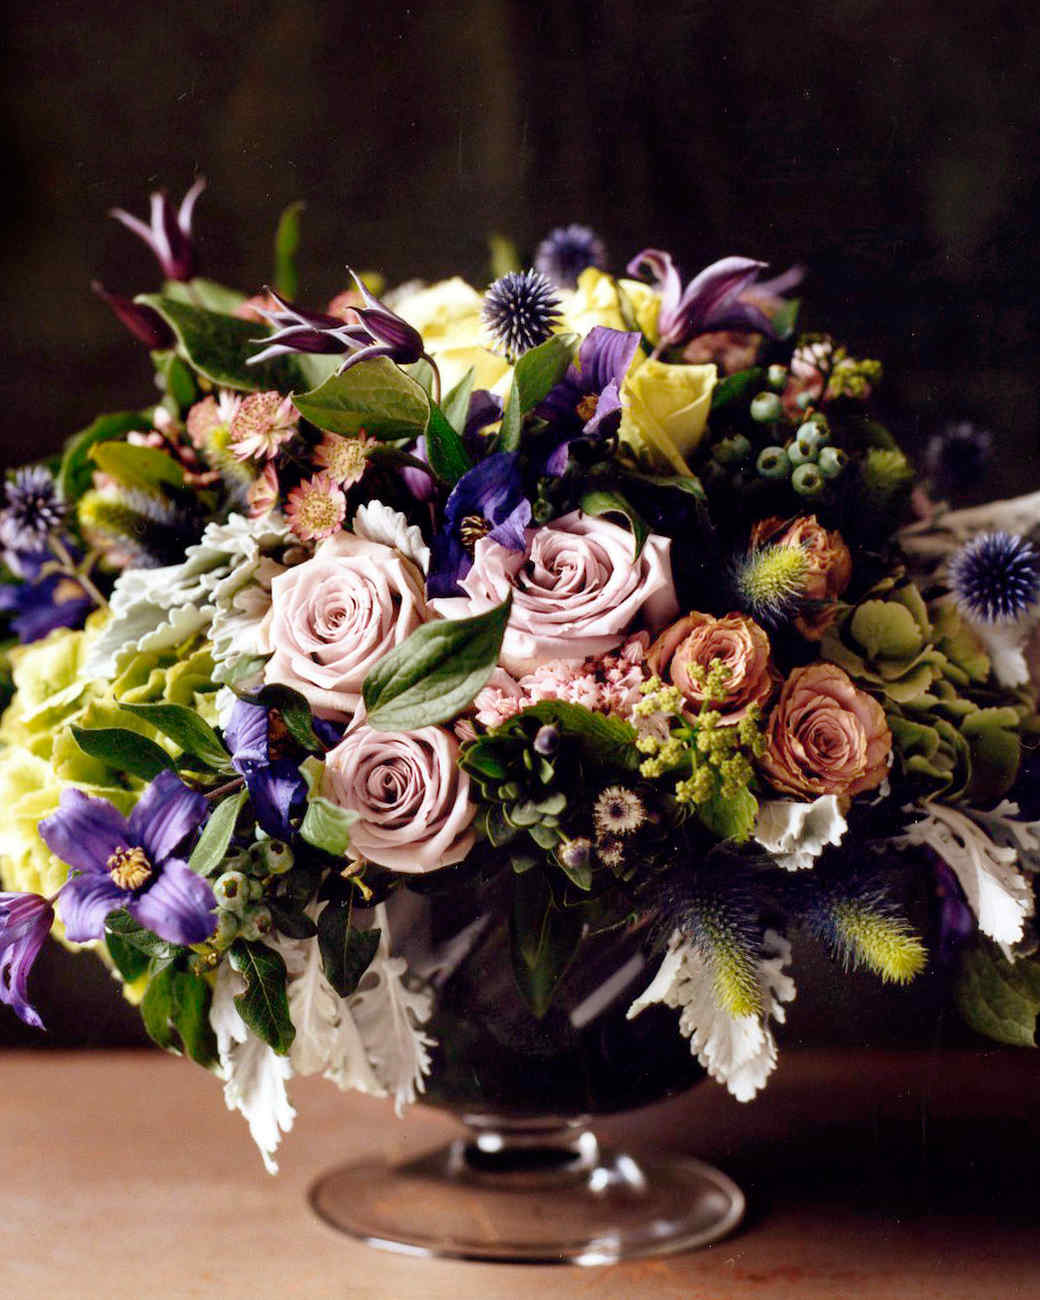 Pics Of Flower Arrangements spring flower arrangements | martha stewart